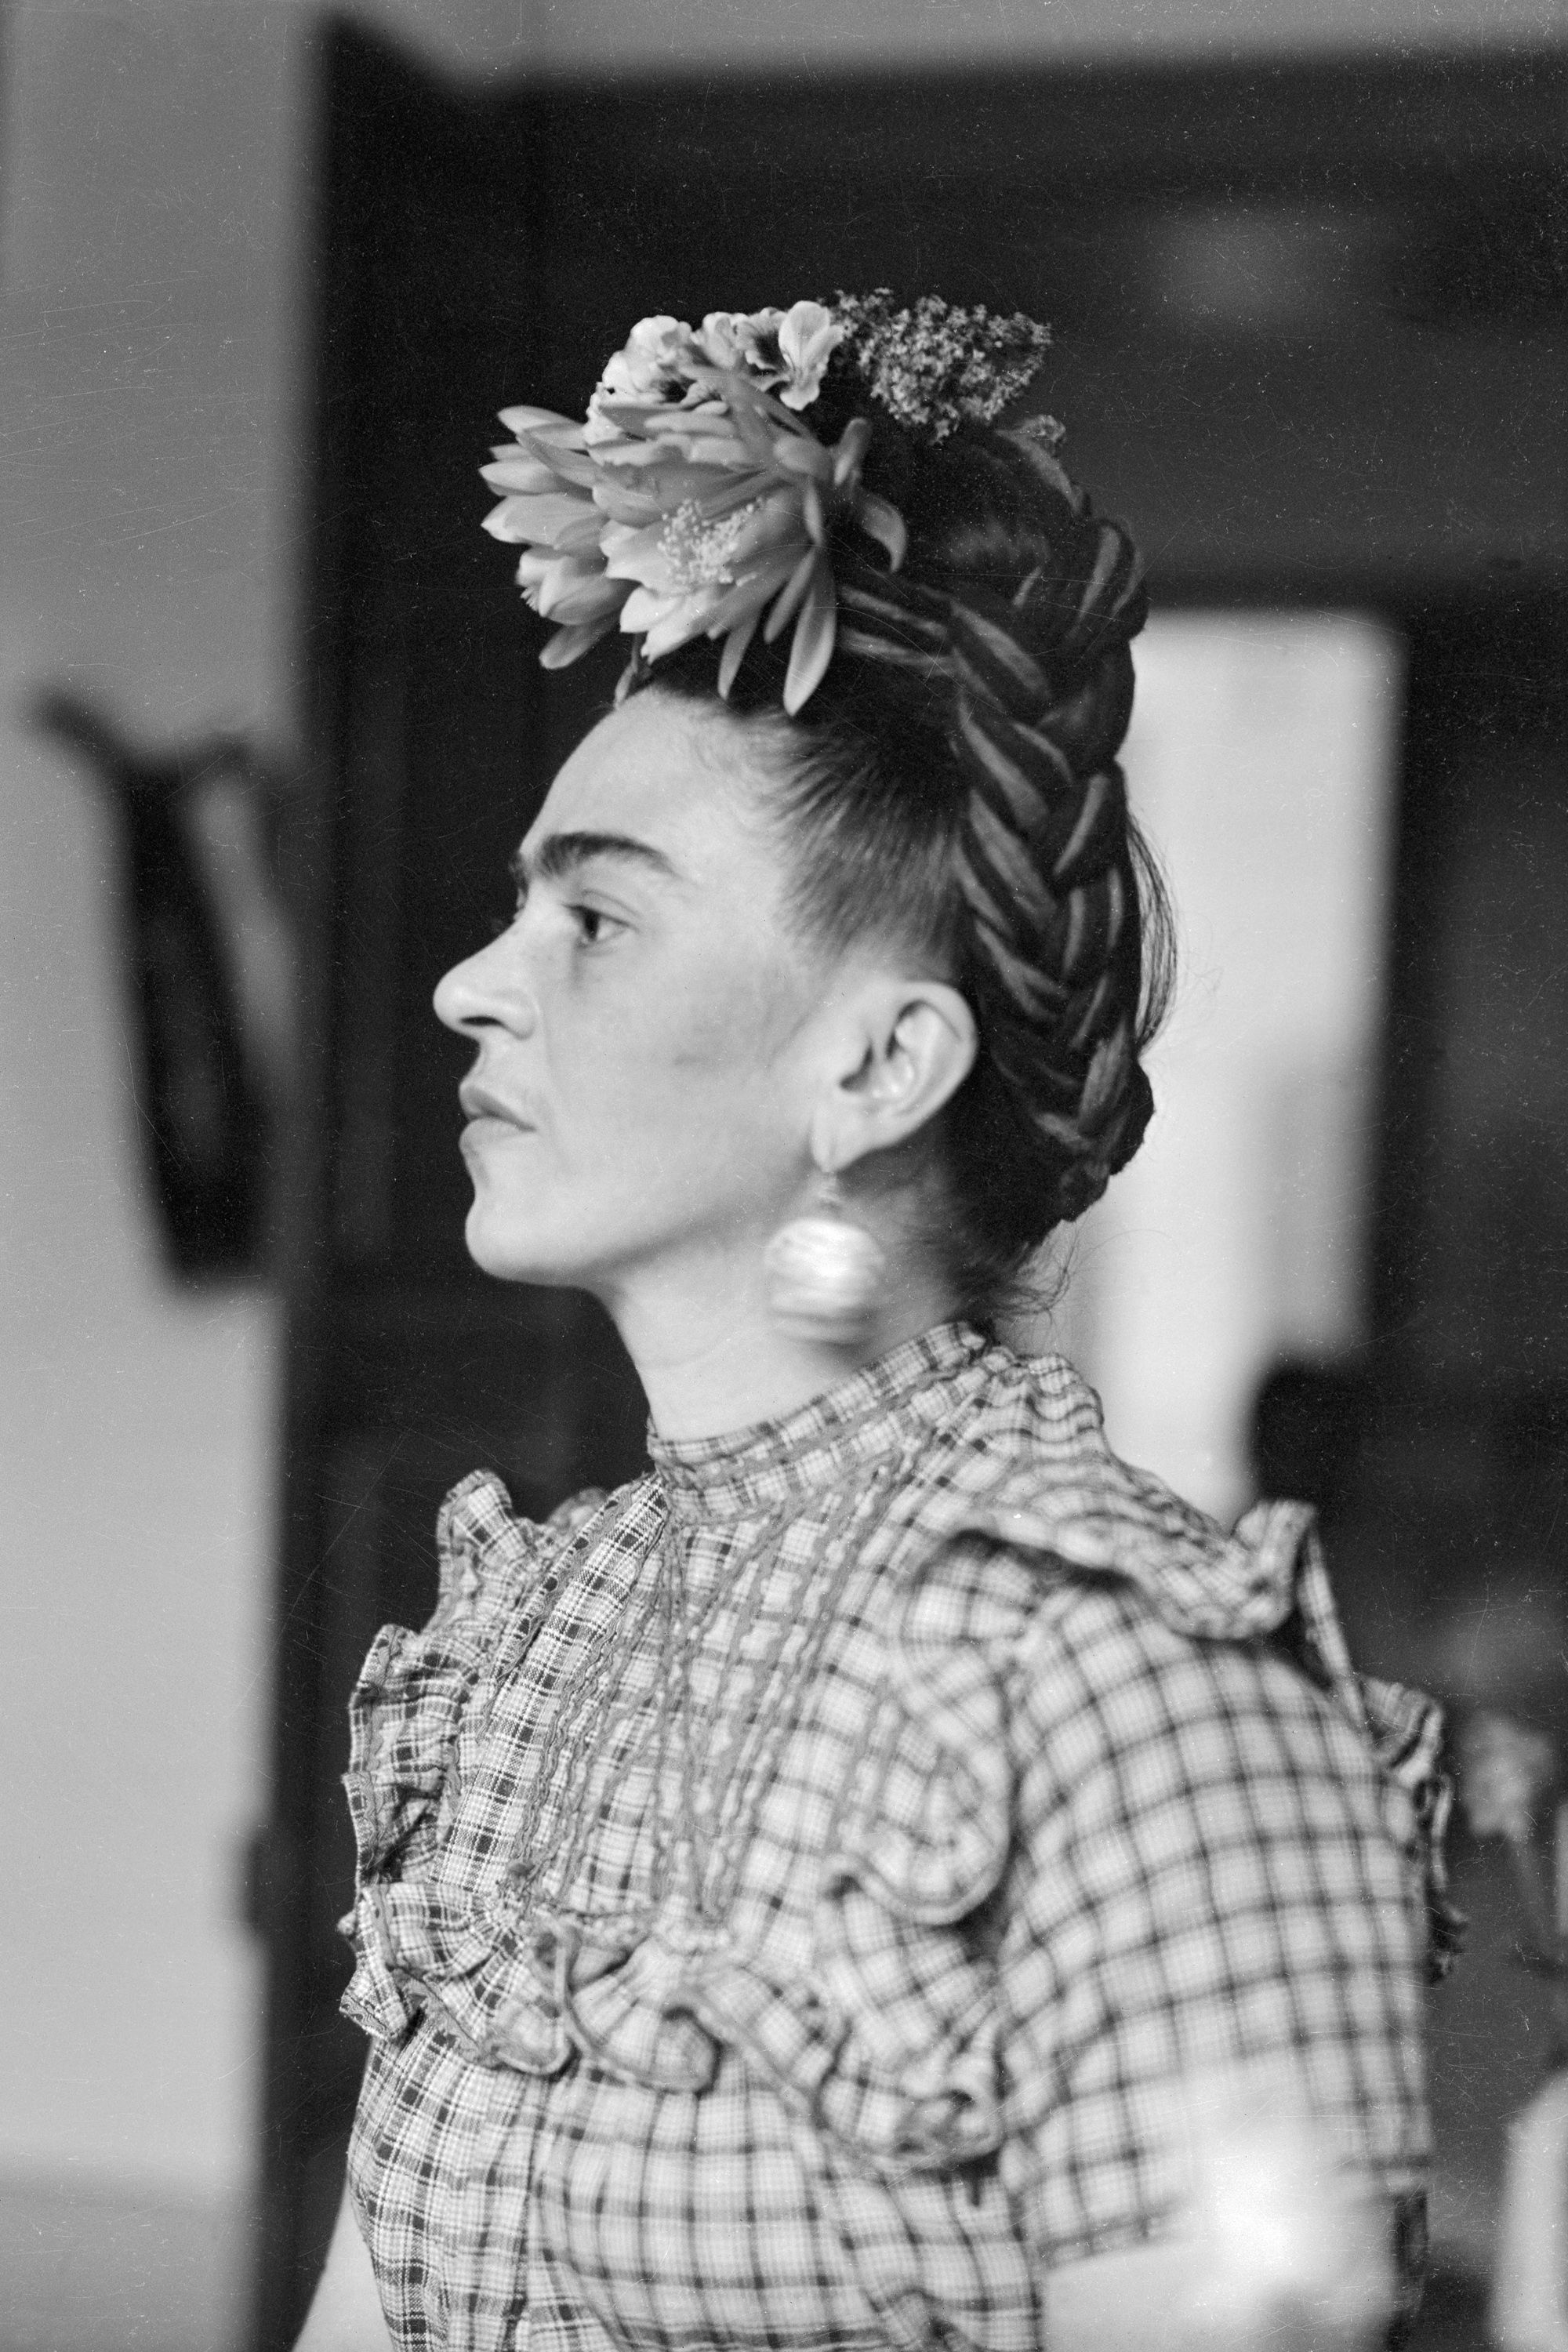 1944 --- Original caption: Frida Kahlo, (1910-1954), Mexican painter and wife of Diego Rivera is shown in this head and shoulders photograph. --- Image by © Bettmann/CORBIS